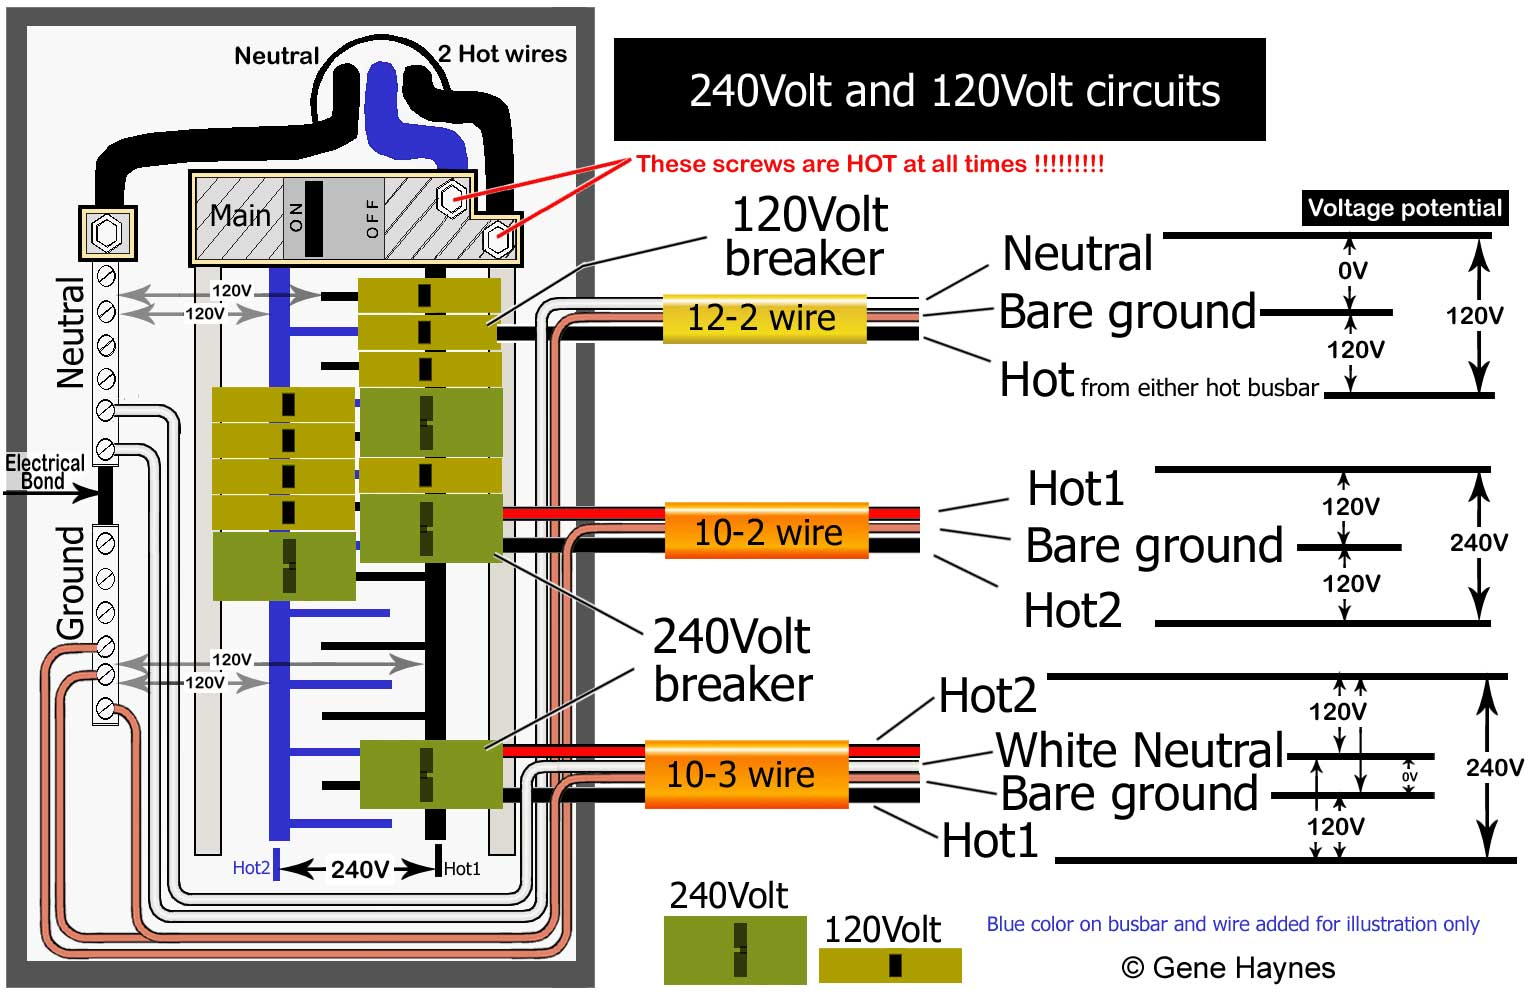 Wiring 240 Vac | Wiring Diagram - 240 Volt Single Phase Wiring Diagram